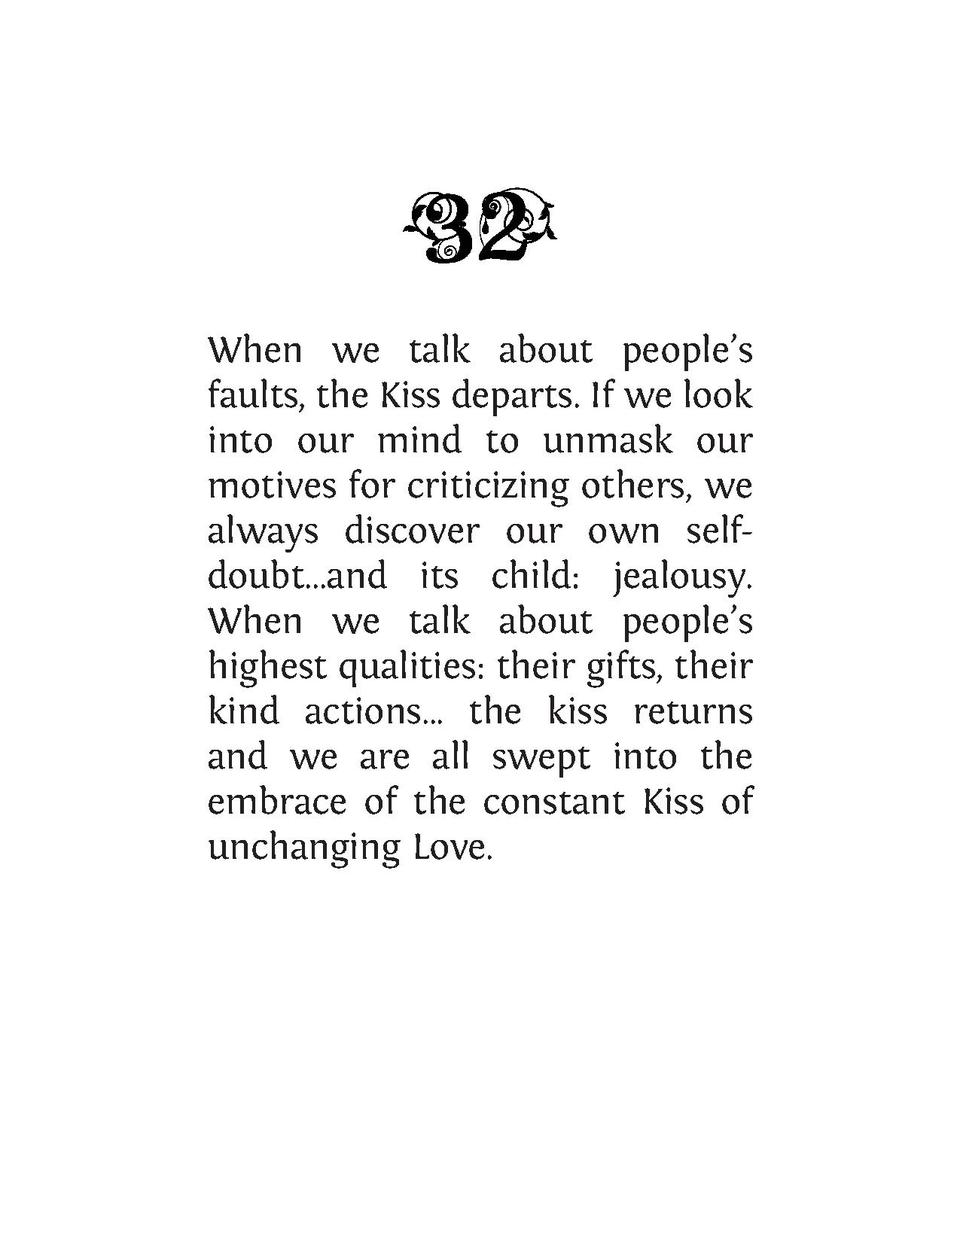 When we talk about people   s faults, the Kiss departs. If we look into our mind to unmask our motives for criticizing oth...